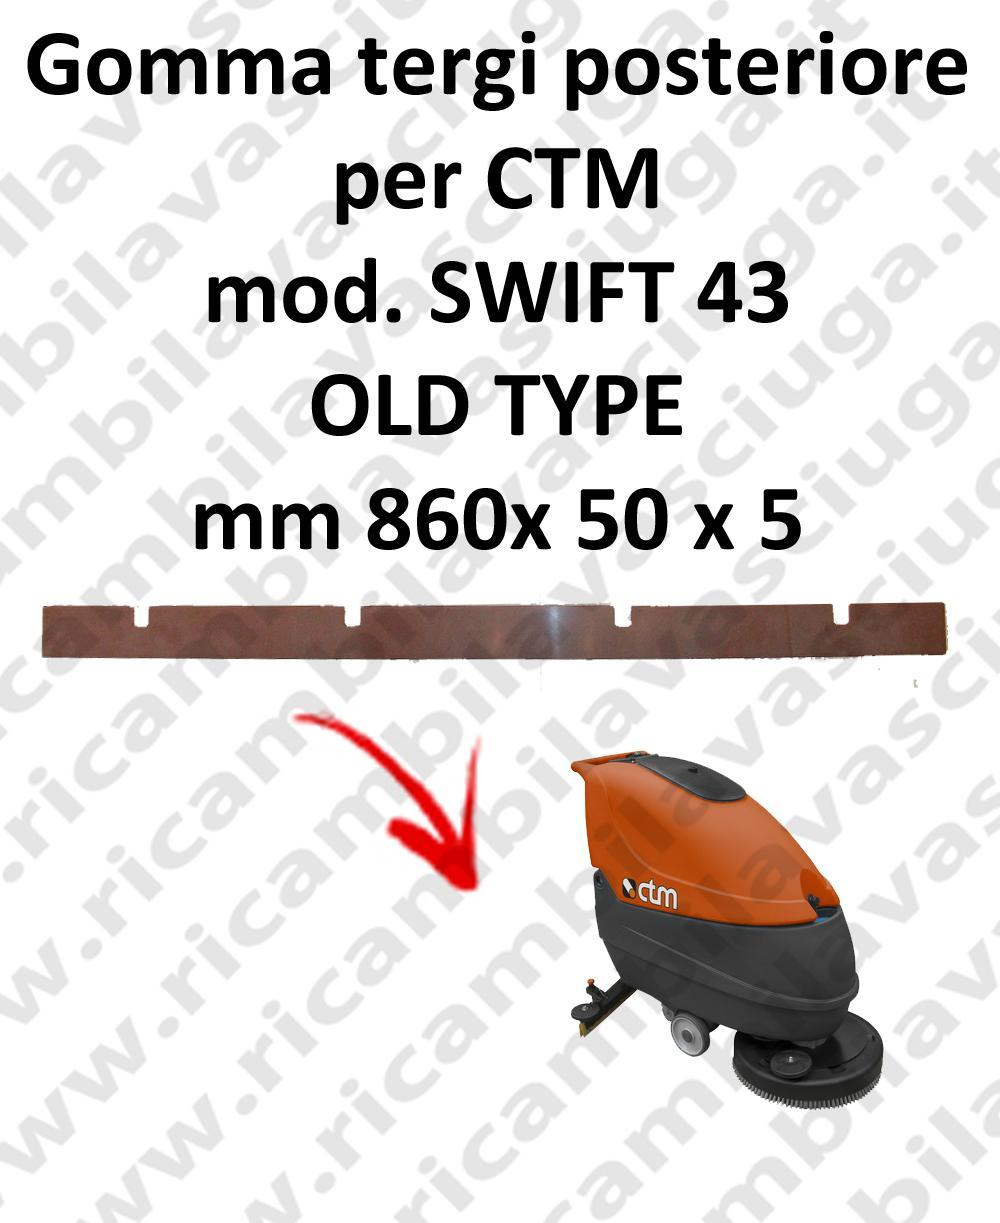 SWIFT 43 OLD TYPE squeegee rubber back for CTM